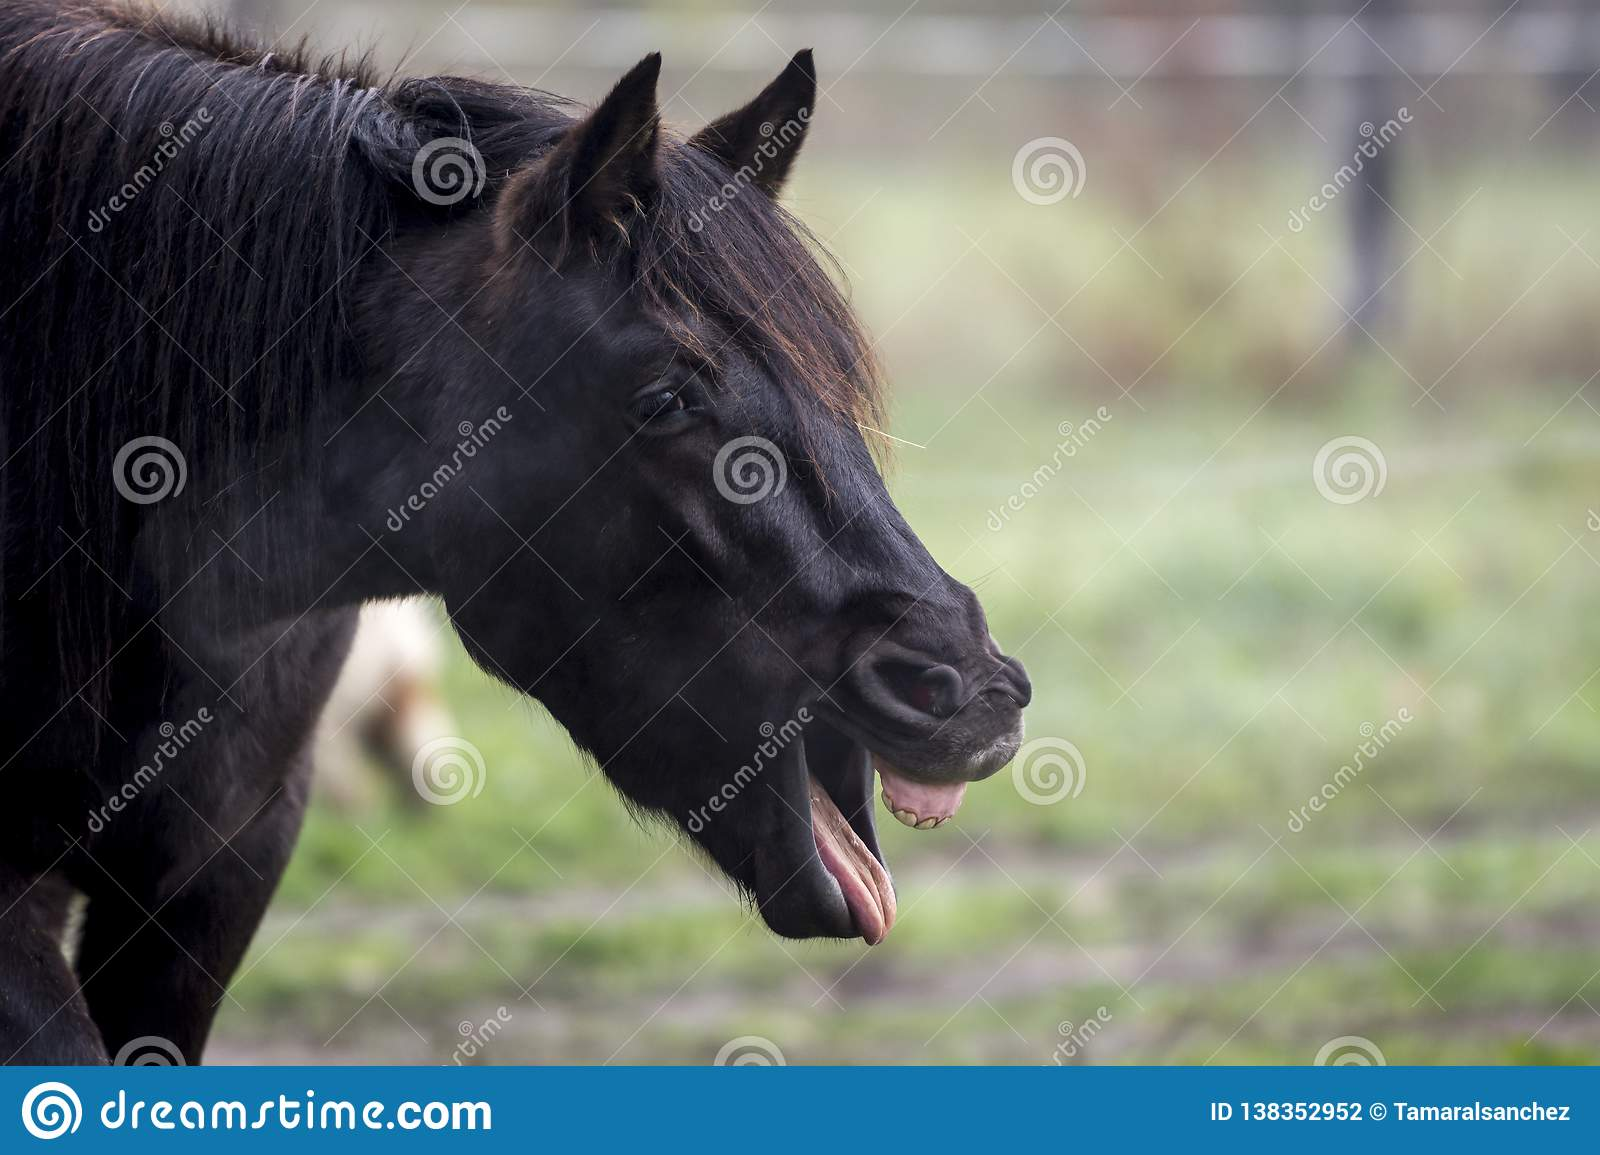 Funny portrait of a black horse yawning